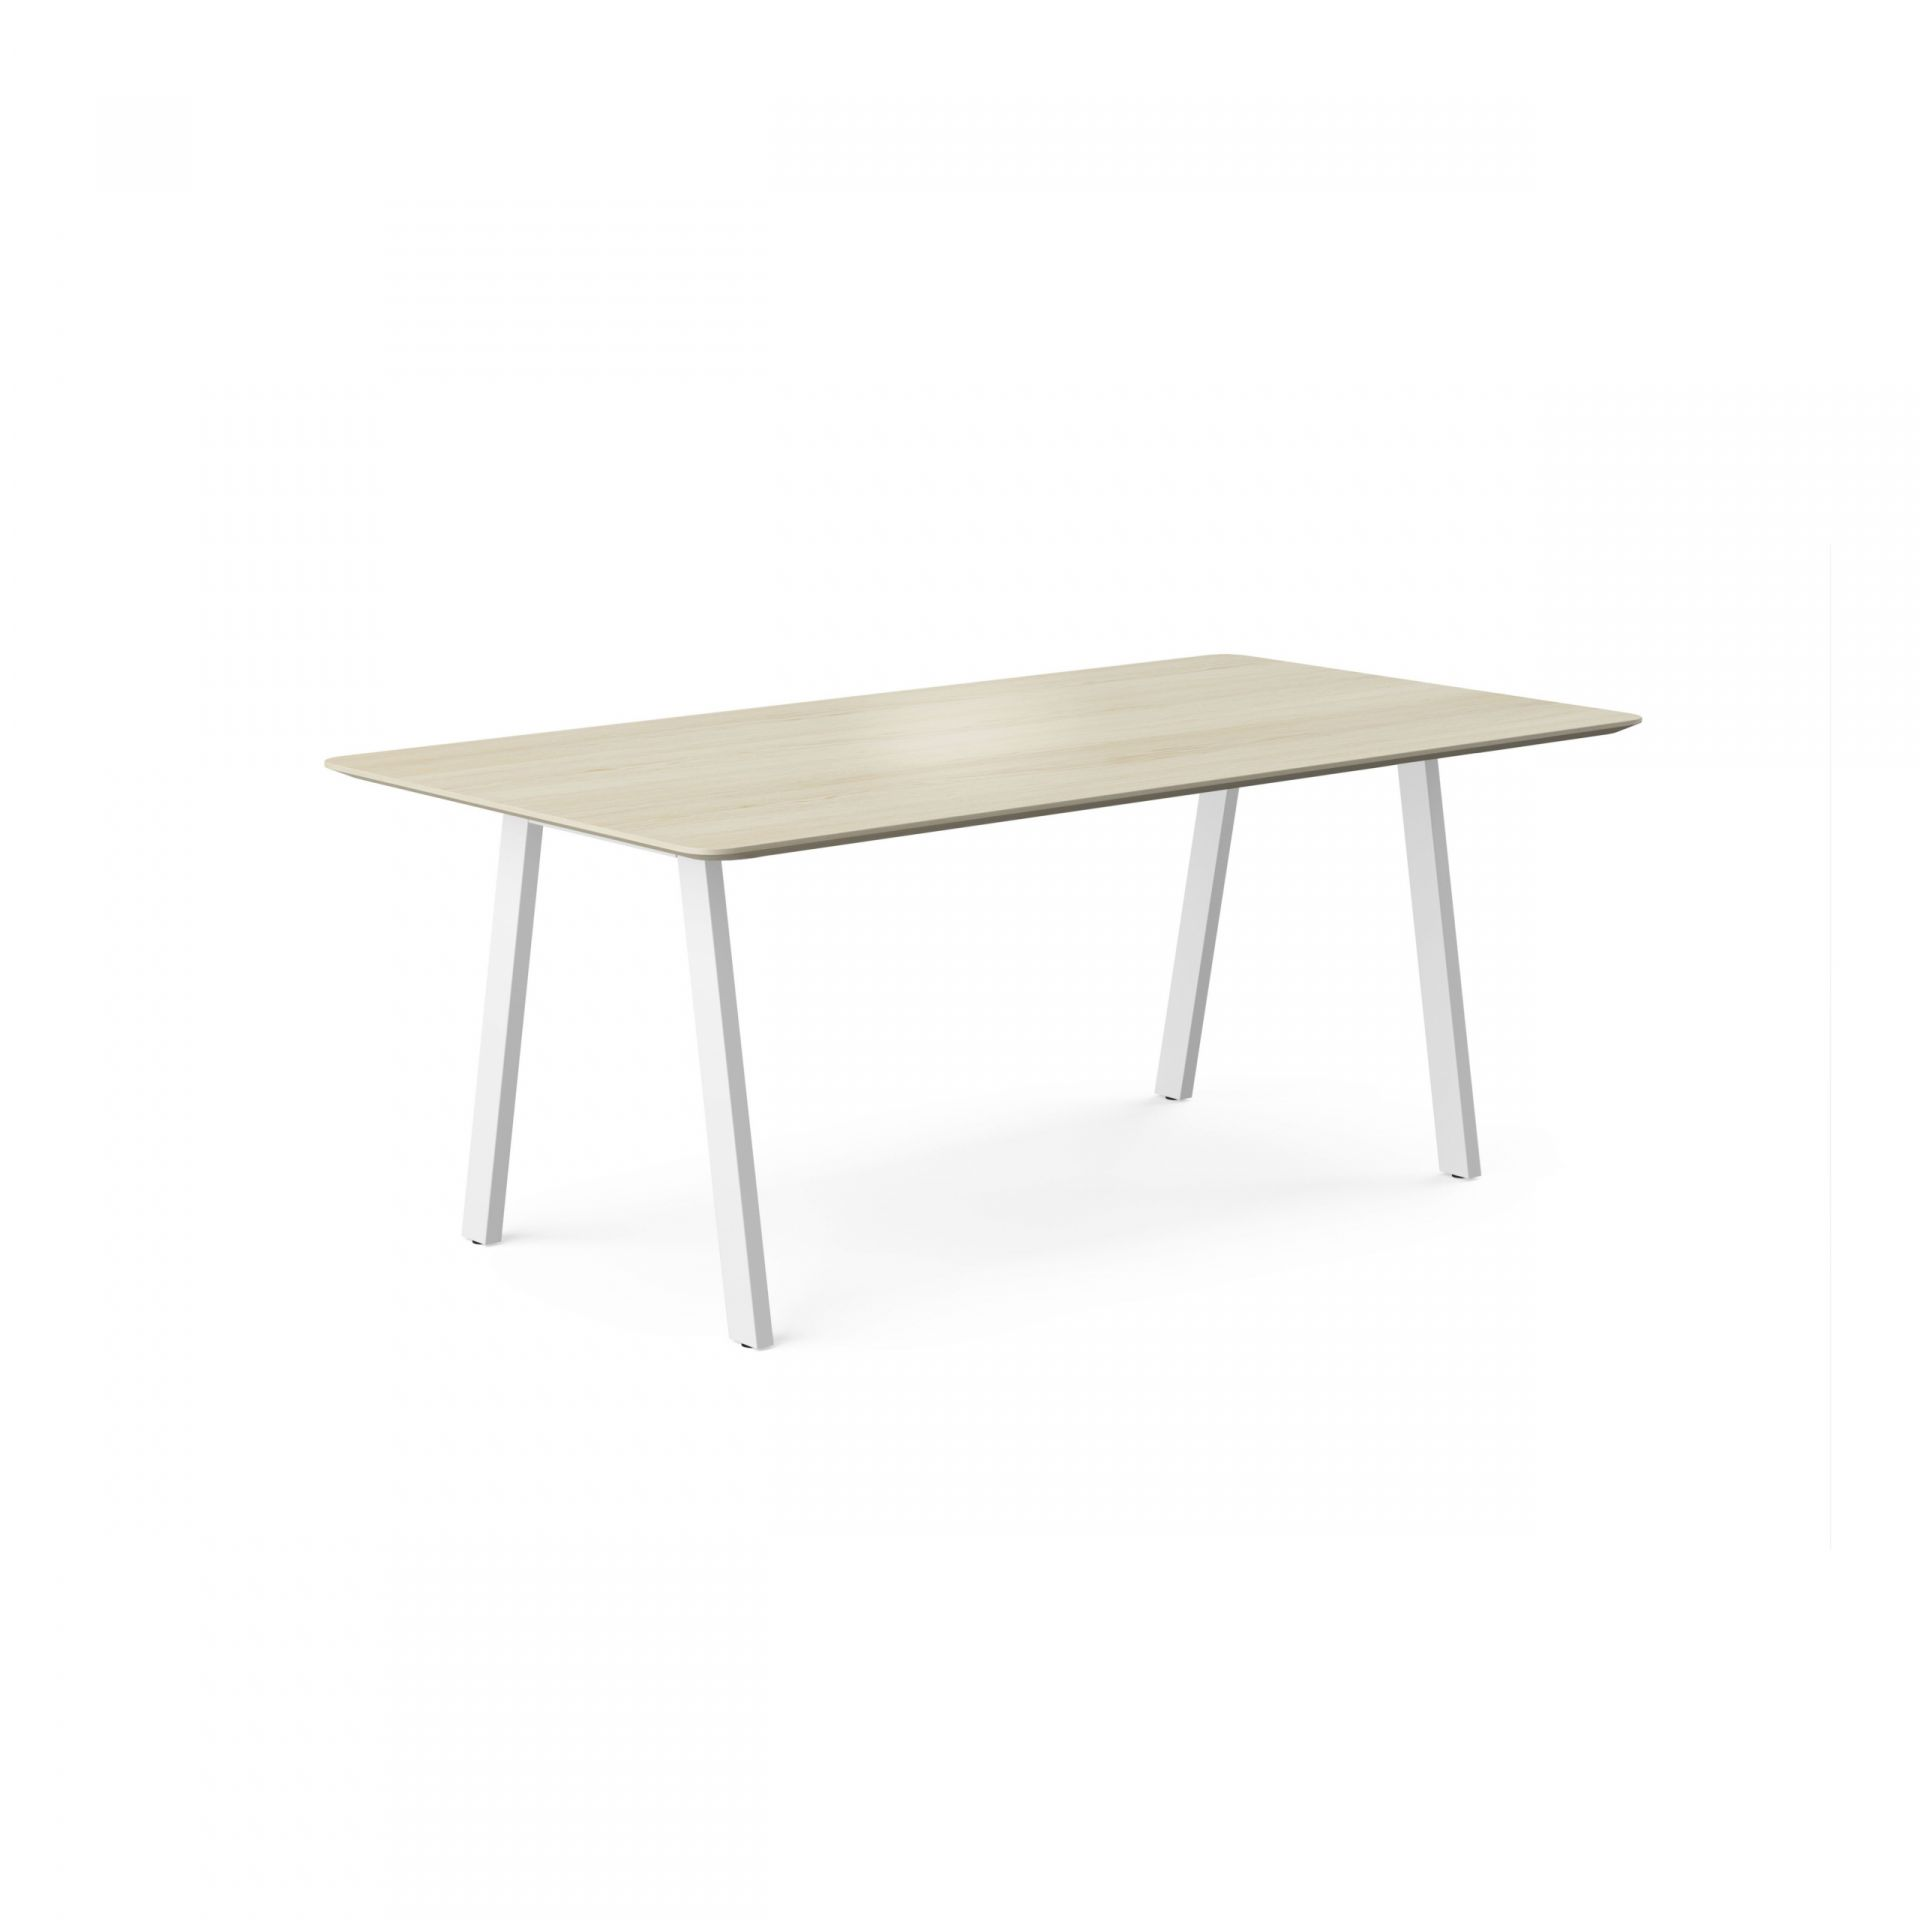 Collaborate Table with metal legs product image 2